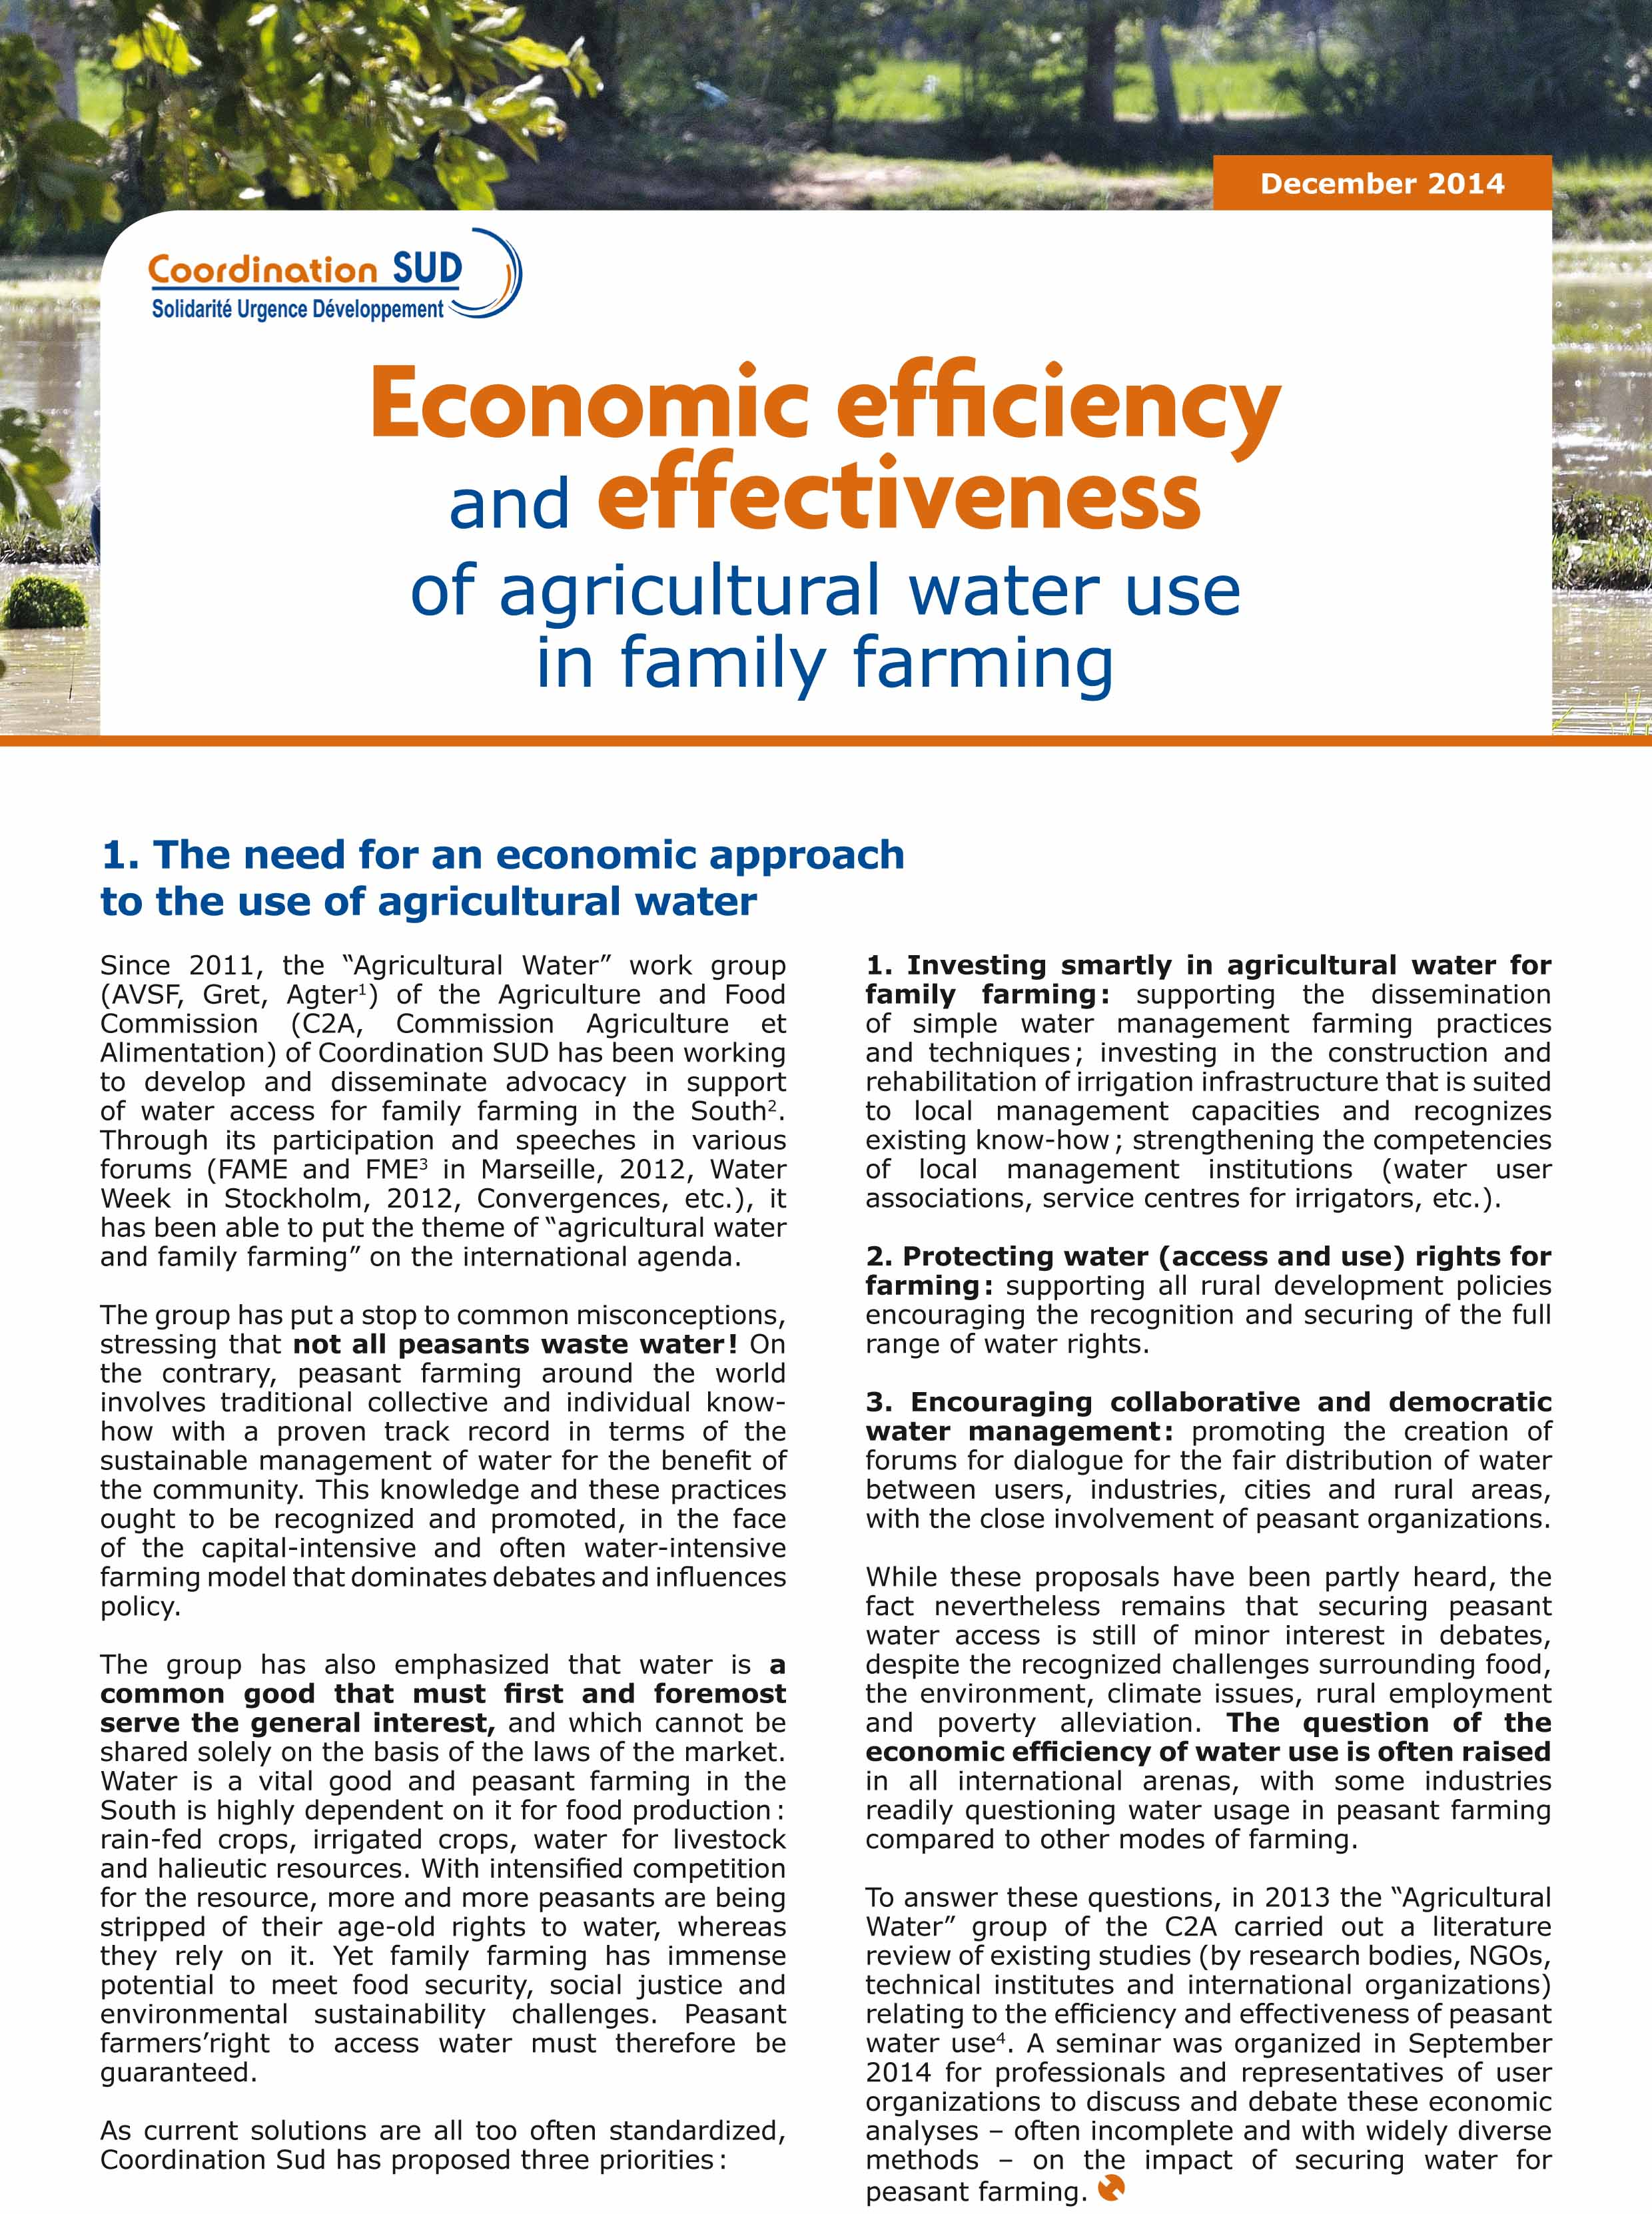 Economic efficiency and effectiveness of agricultural water use in family farming Image principale